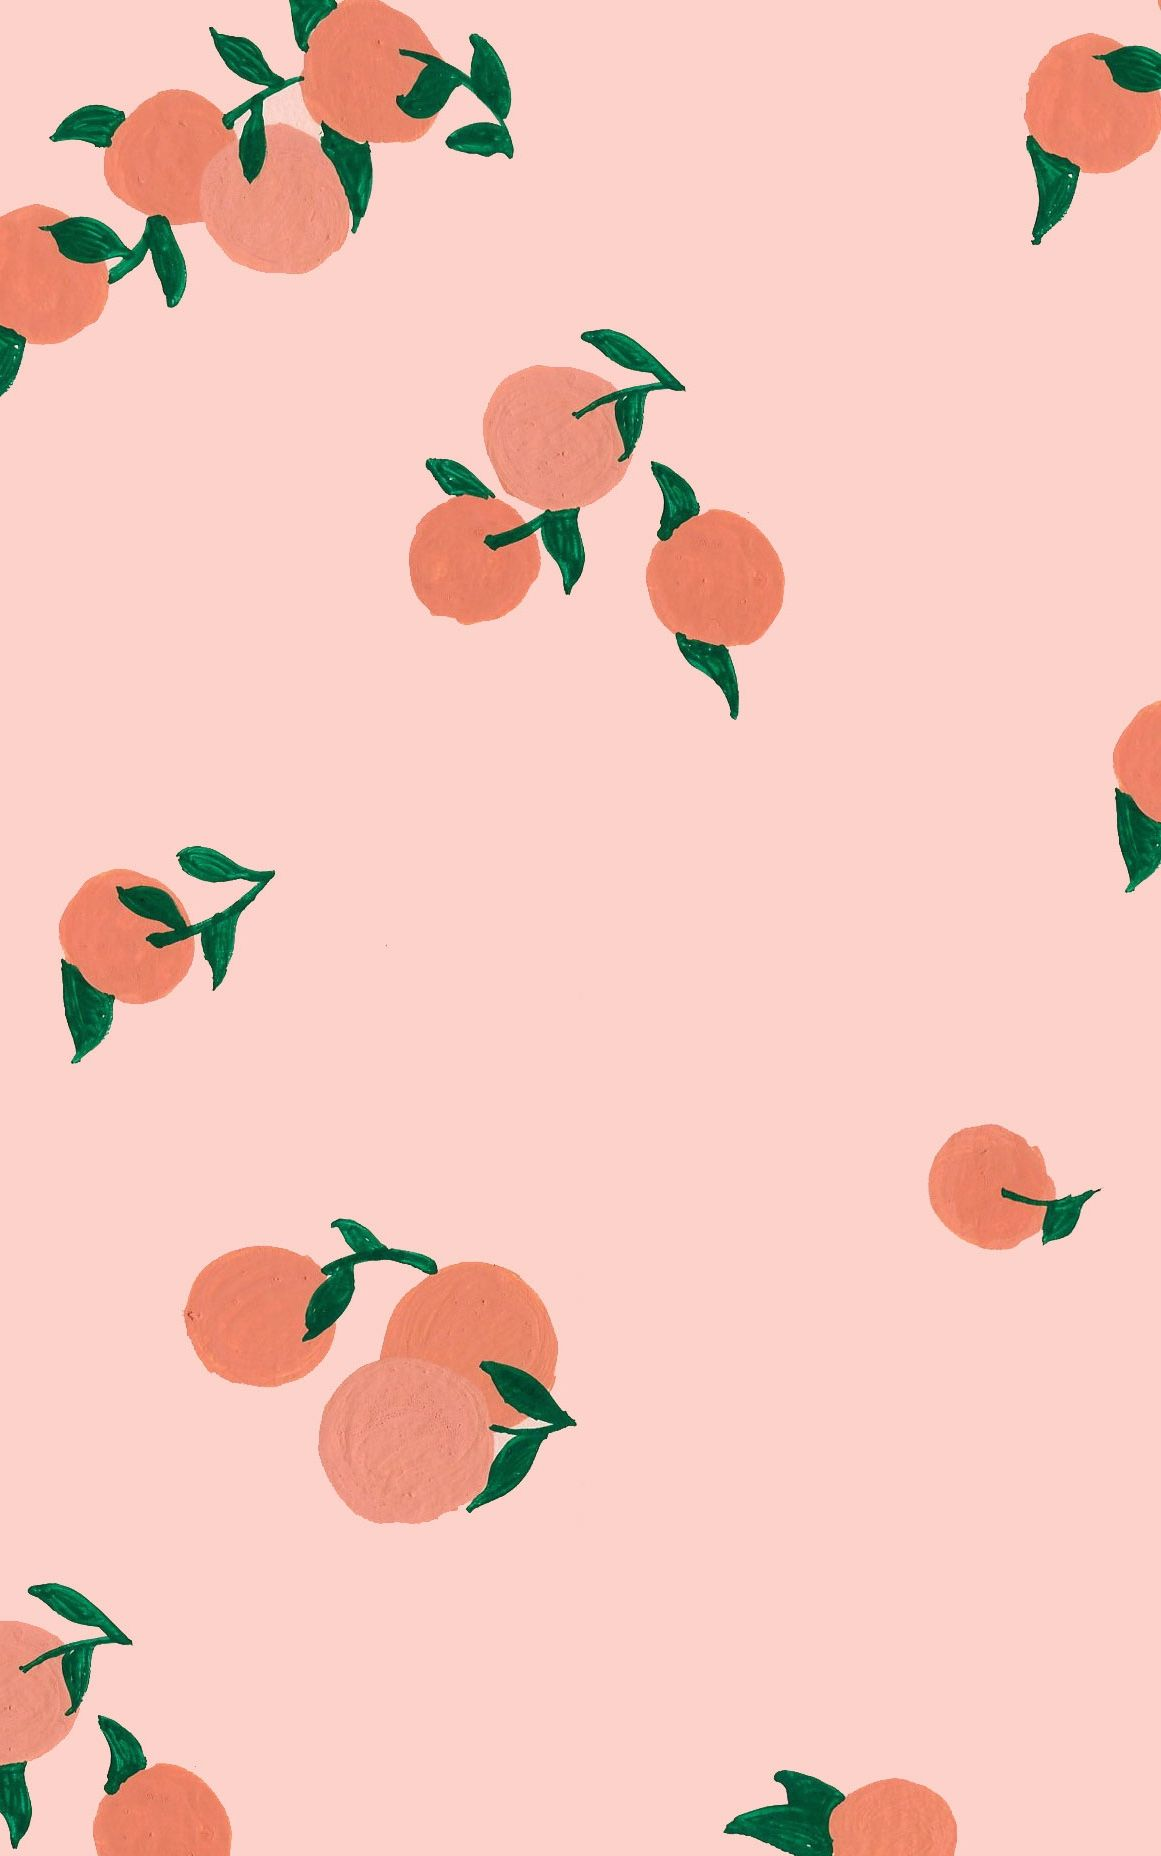 peach print, pattern phone background, wallpaper, fruit